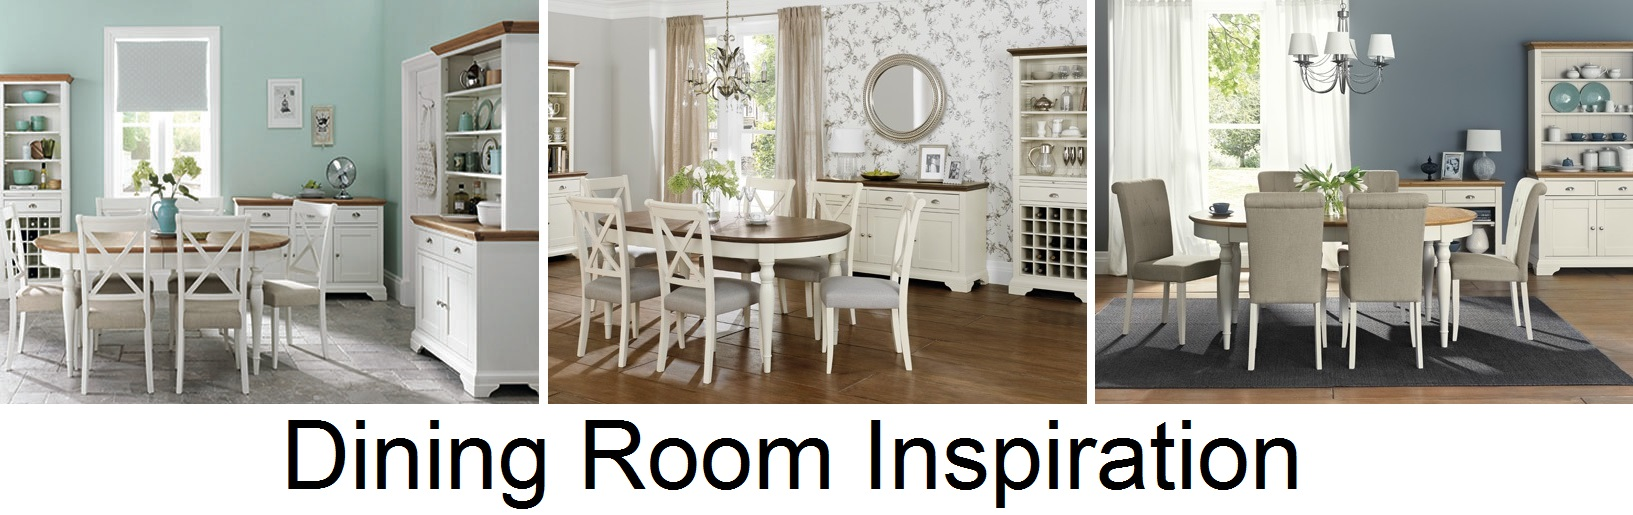 Rodgers of York Dining Room Inspiration